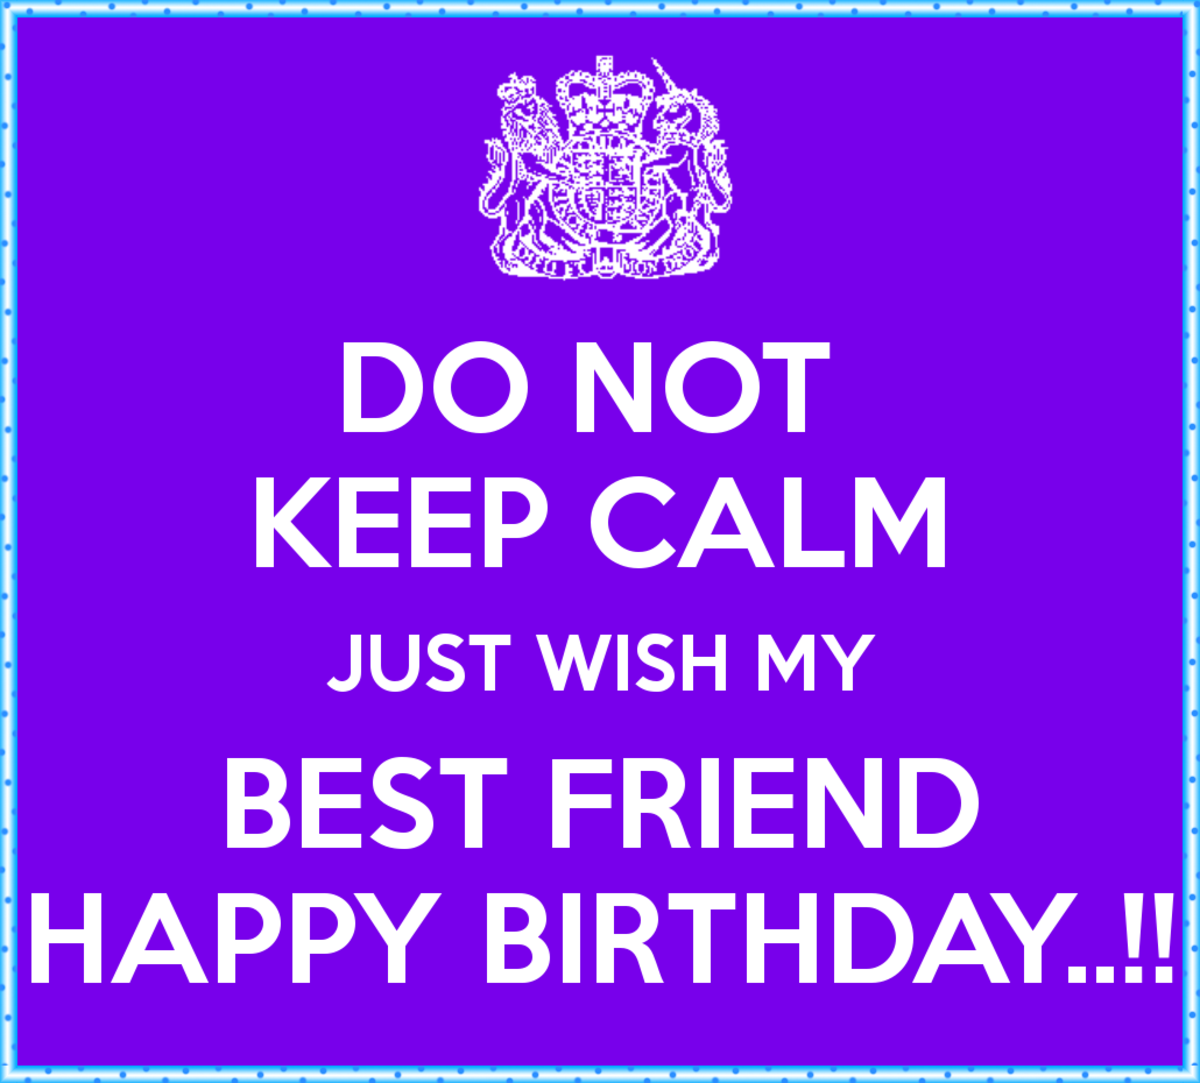 Happy Birthday Letter to My Best Friend | HubPages